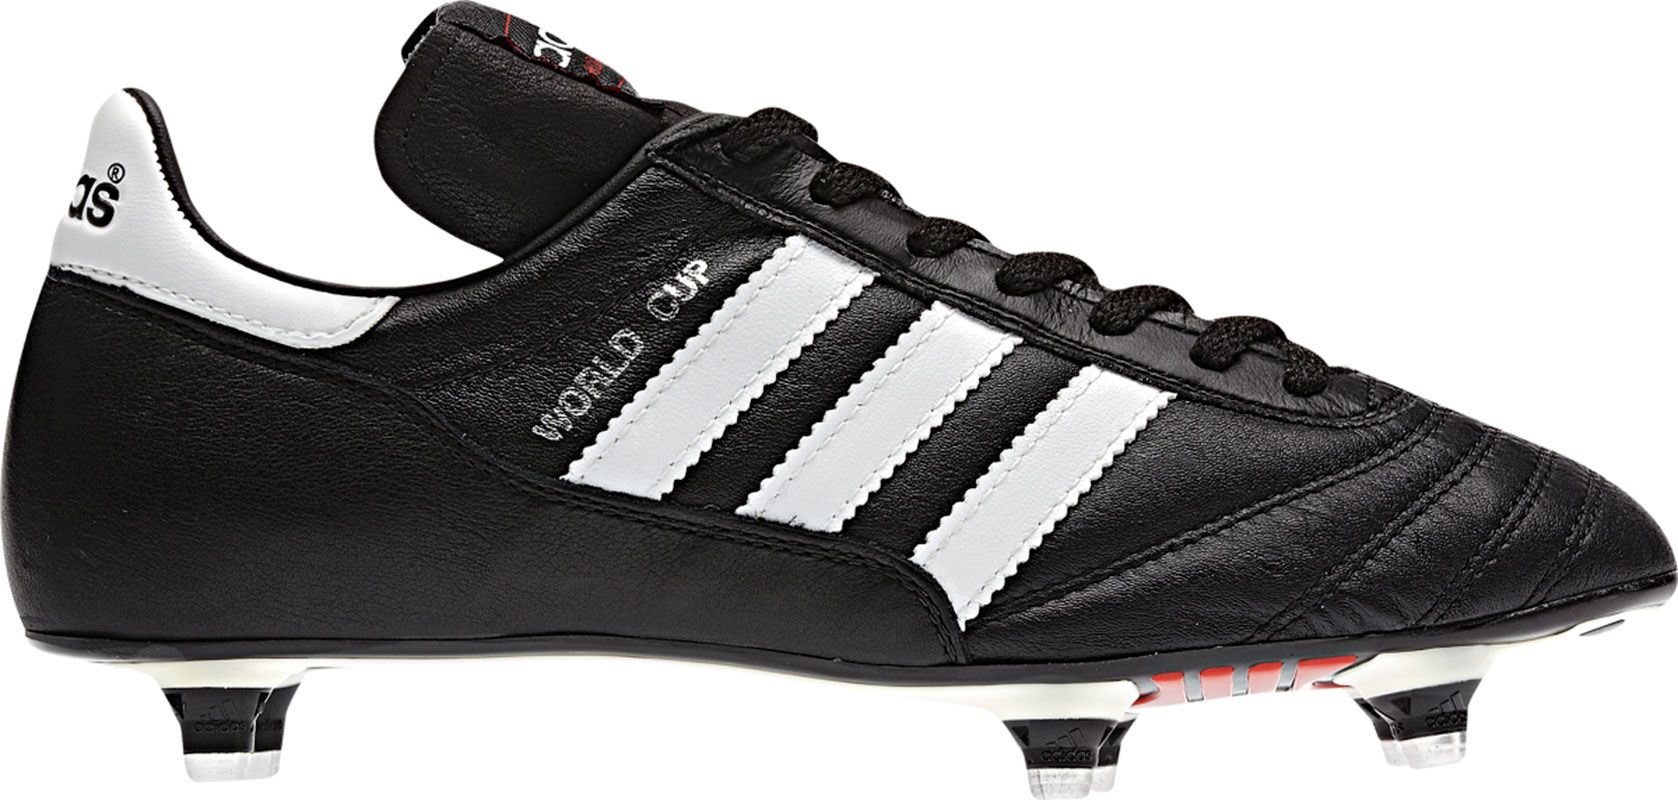 Adidas World Cup Shoes